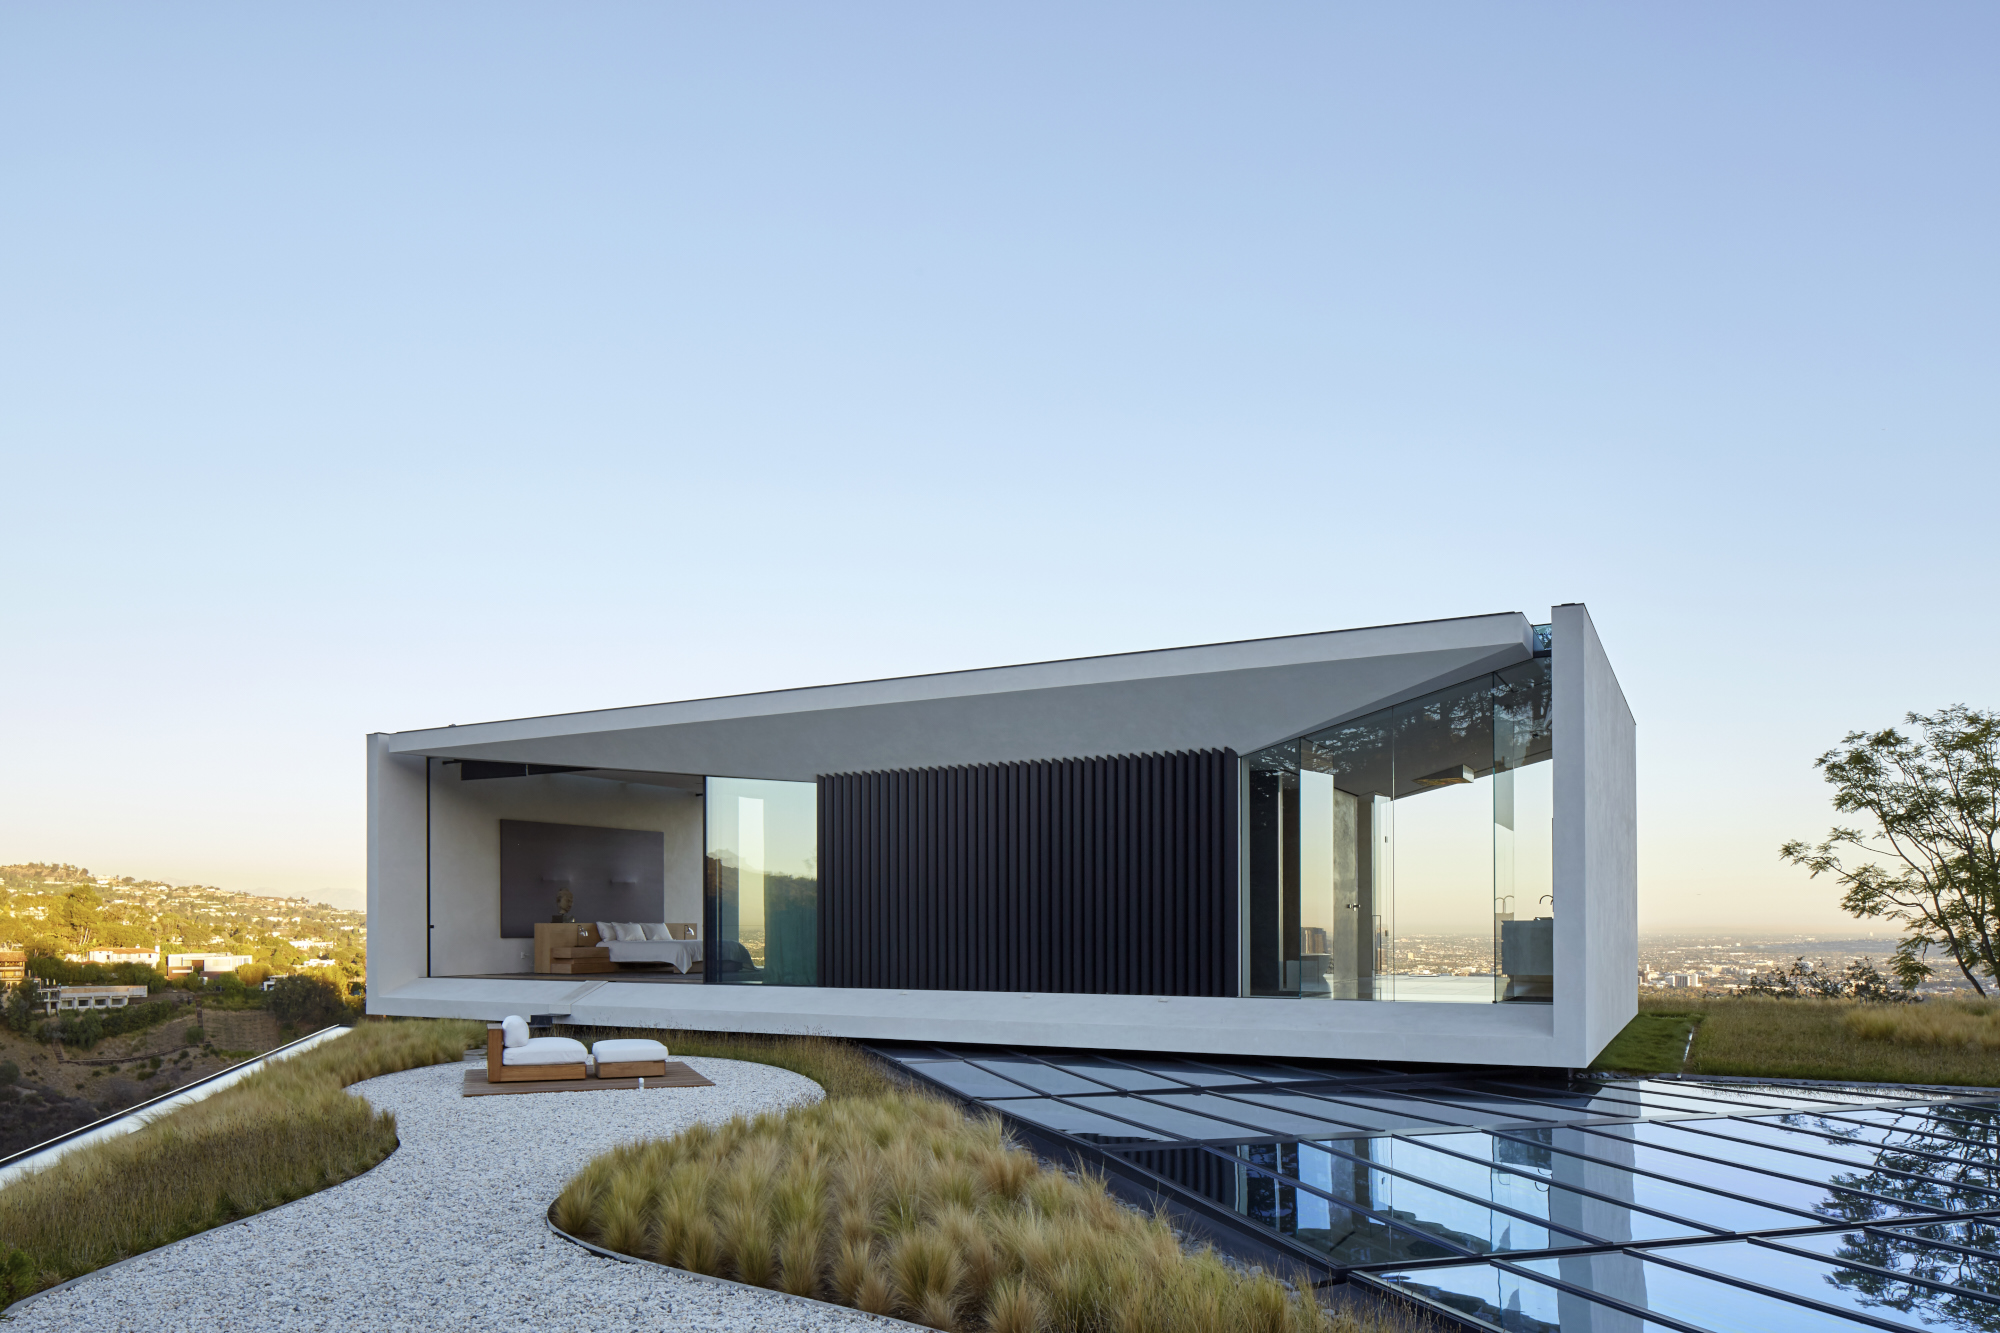 Oppenheim Architecture Stacks Structures To Make Modern L A Villa Knstrct